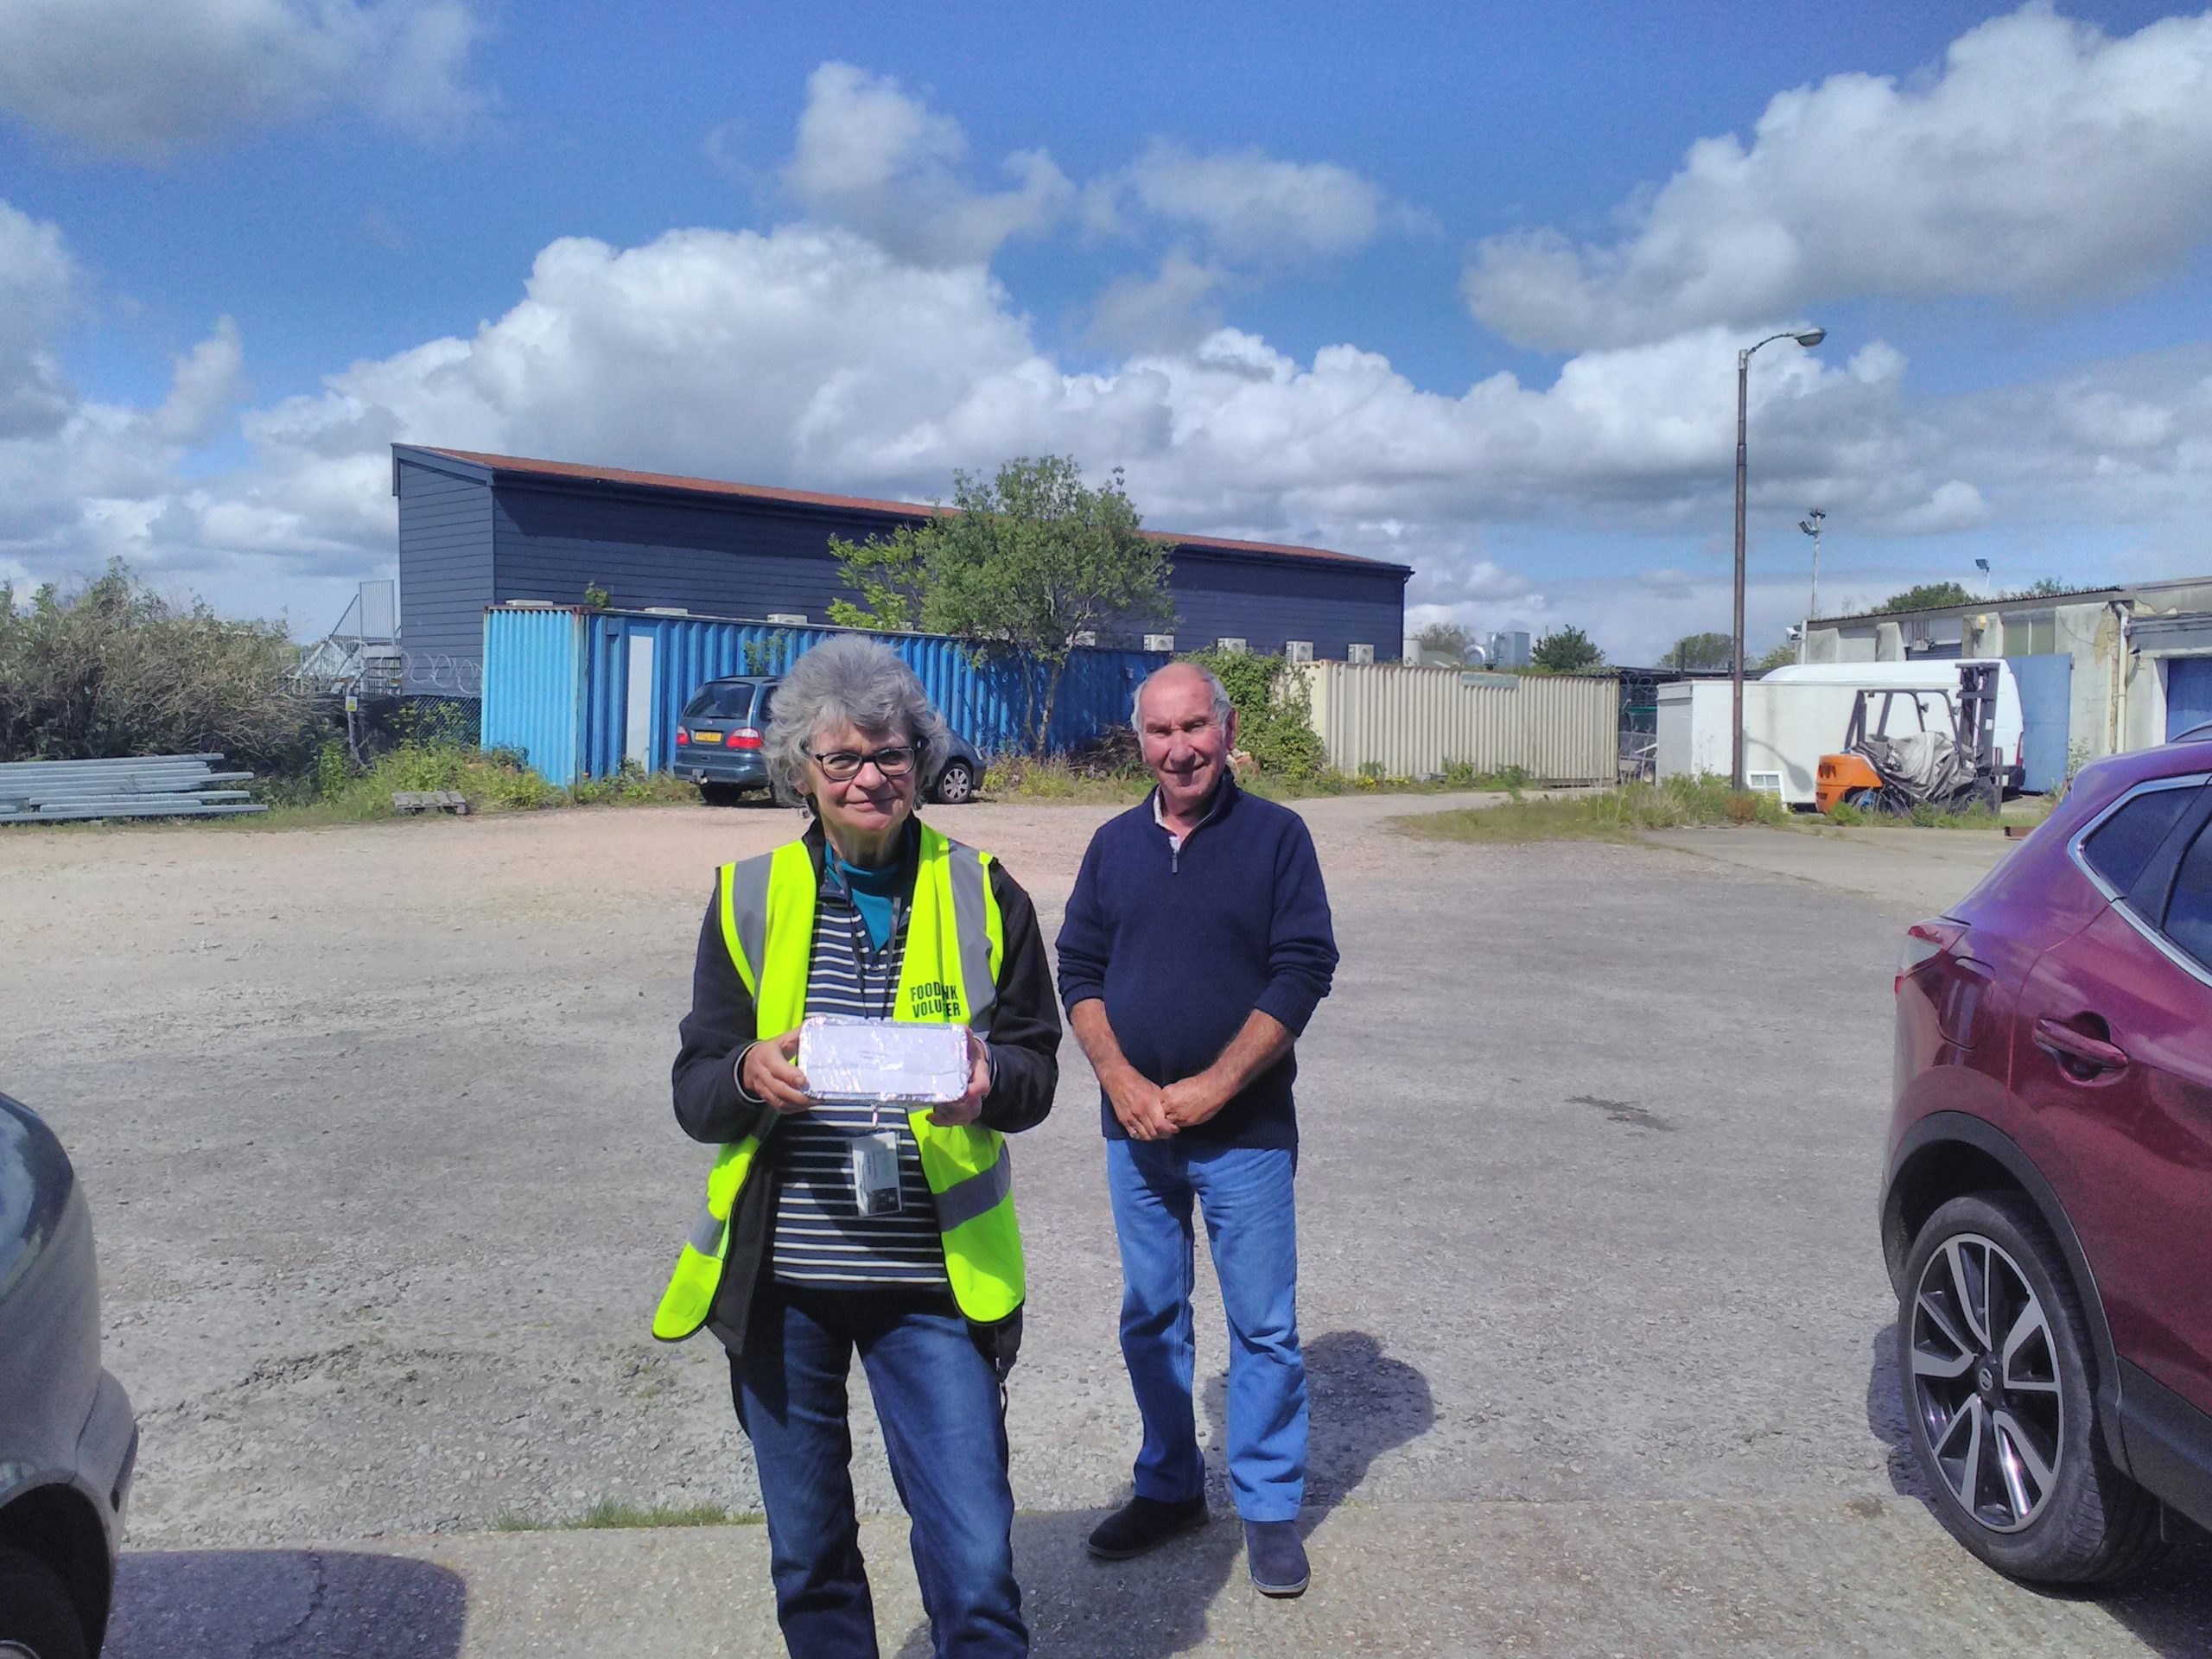 picture of Colin tonks and a helper from Deal Foodbank